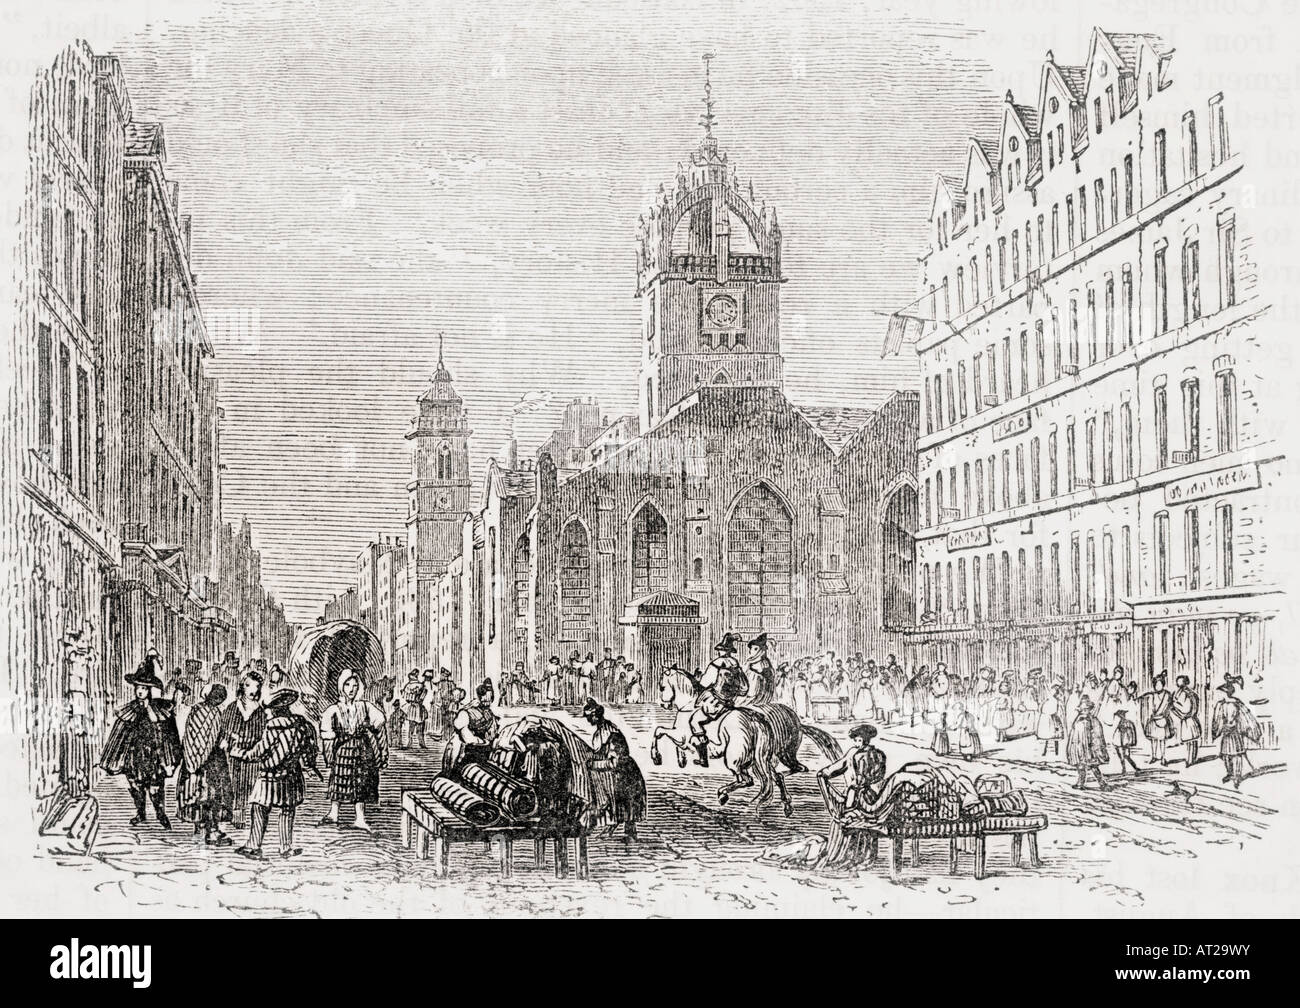 St Giles and the Old Tron Church Edinburgh Scotland in 17th century - Stock Image